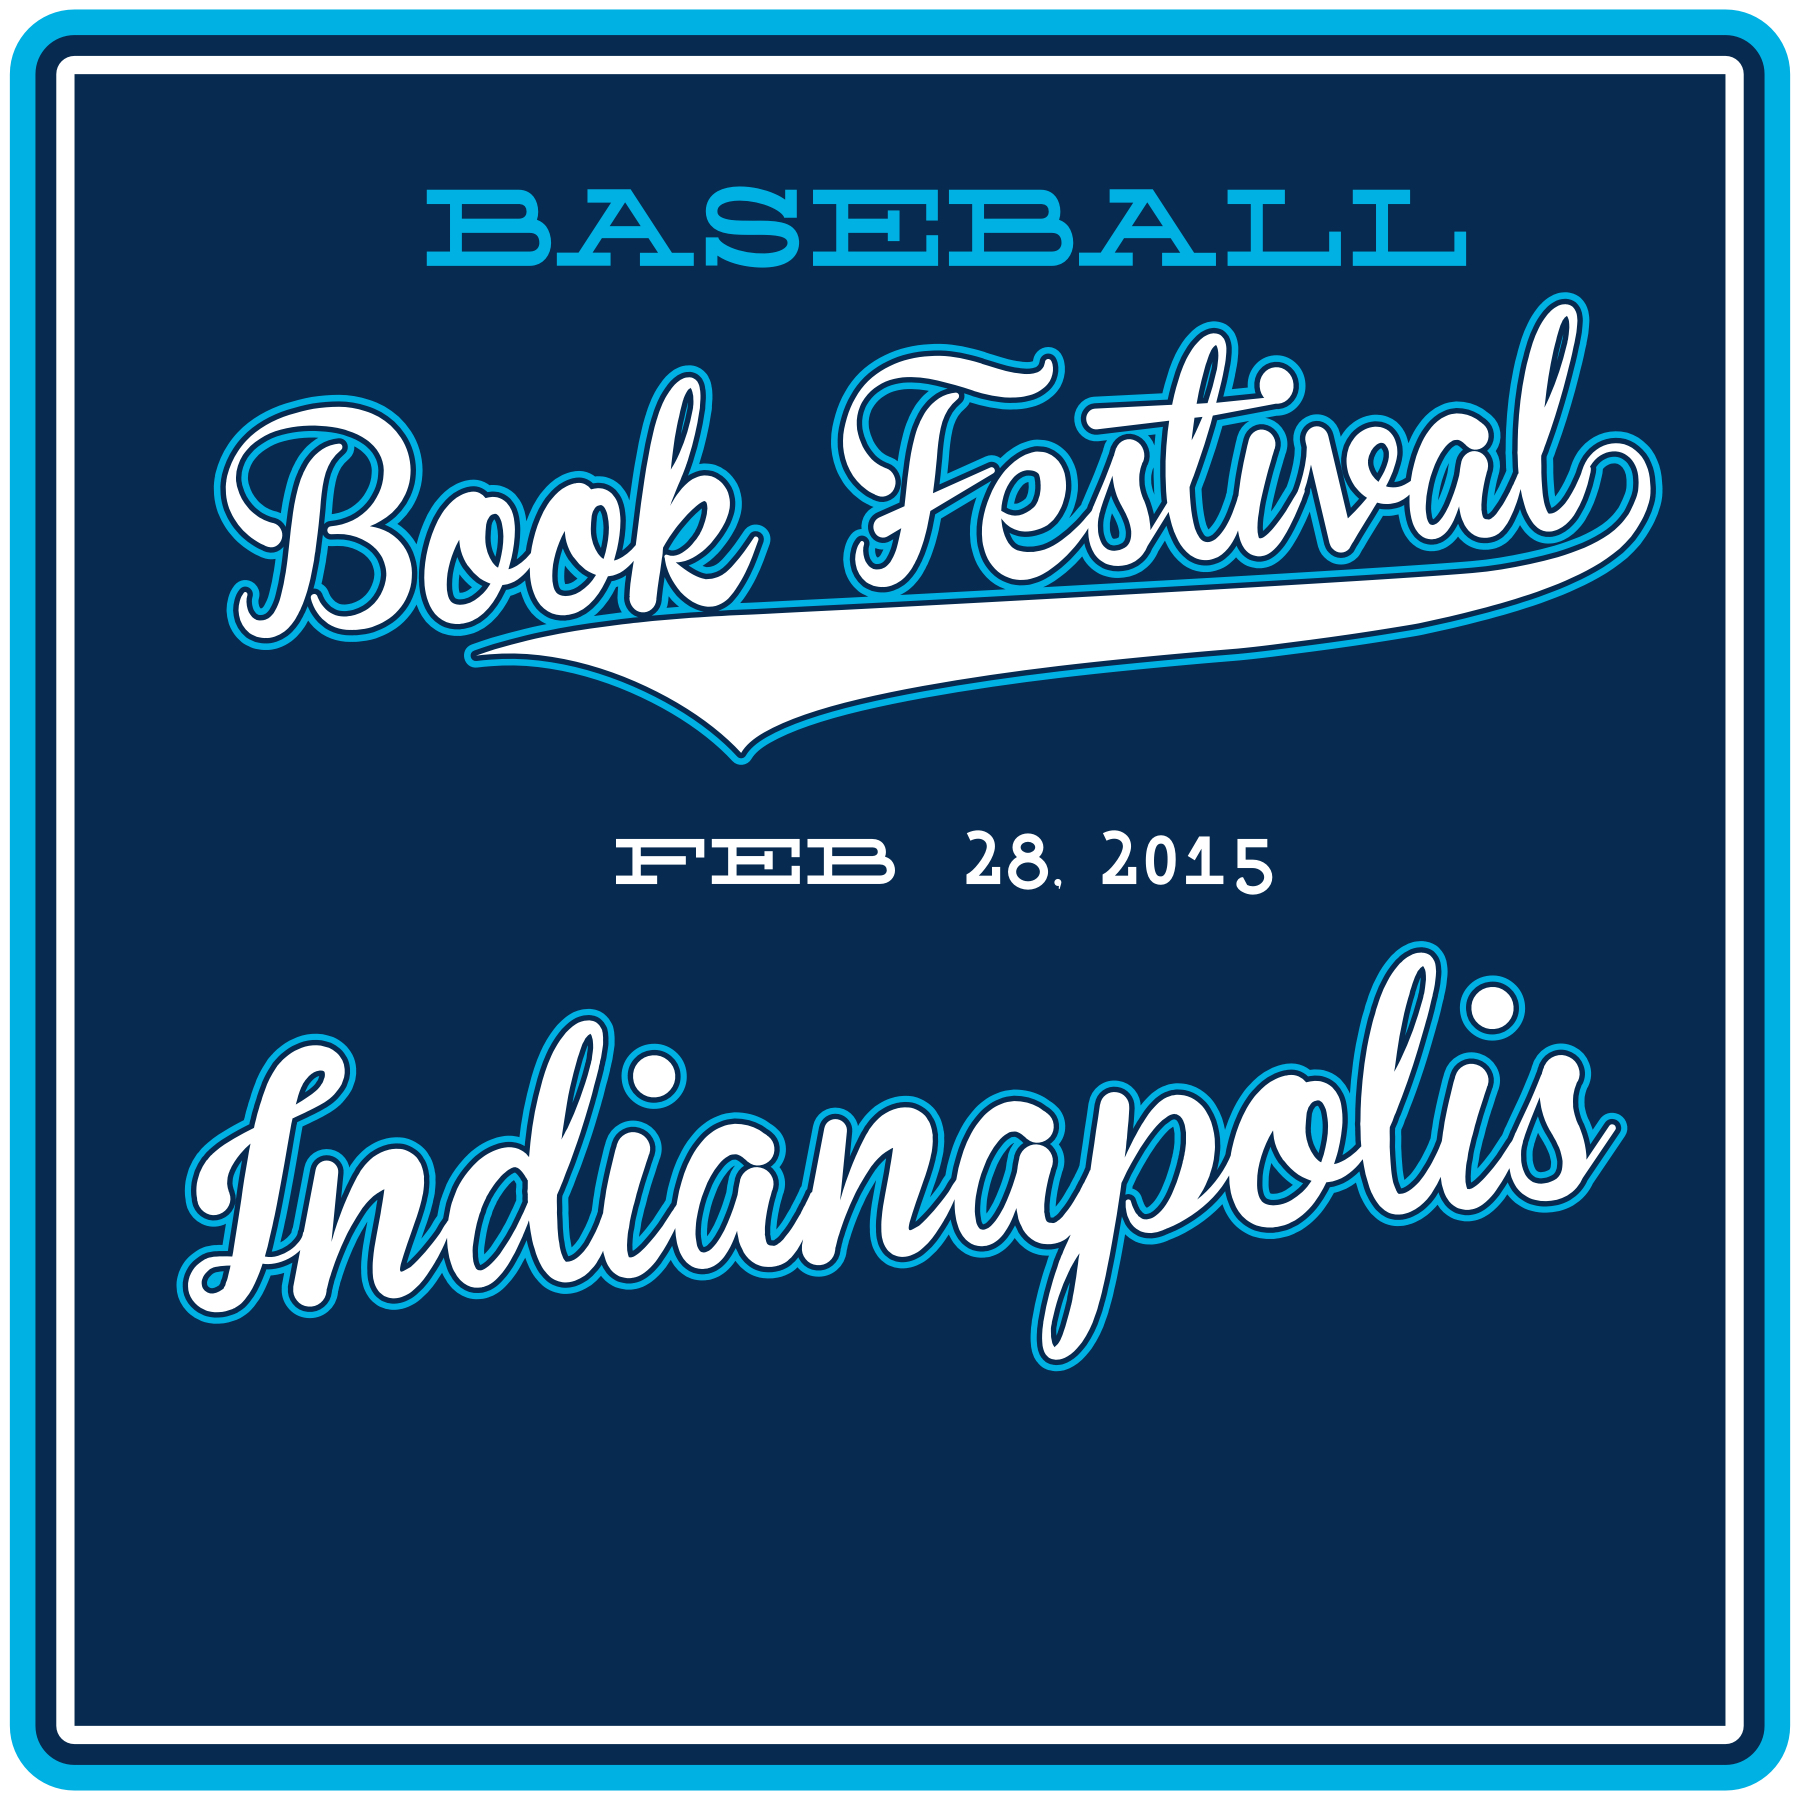 The 2015 Baseball Book Festival